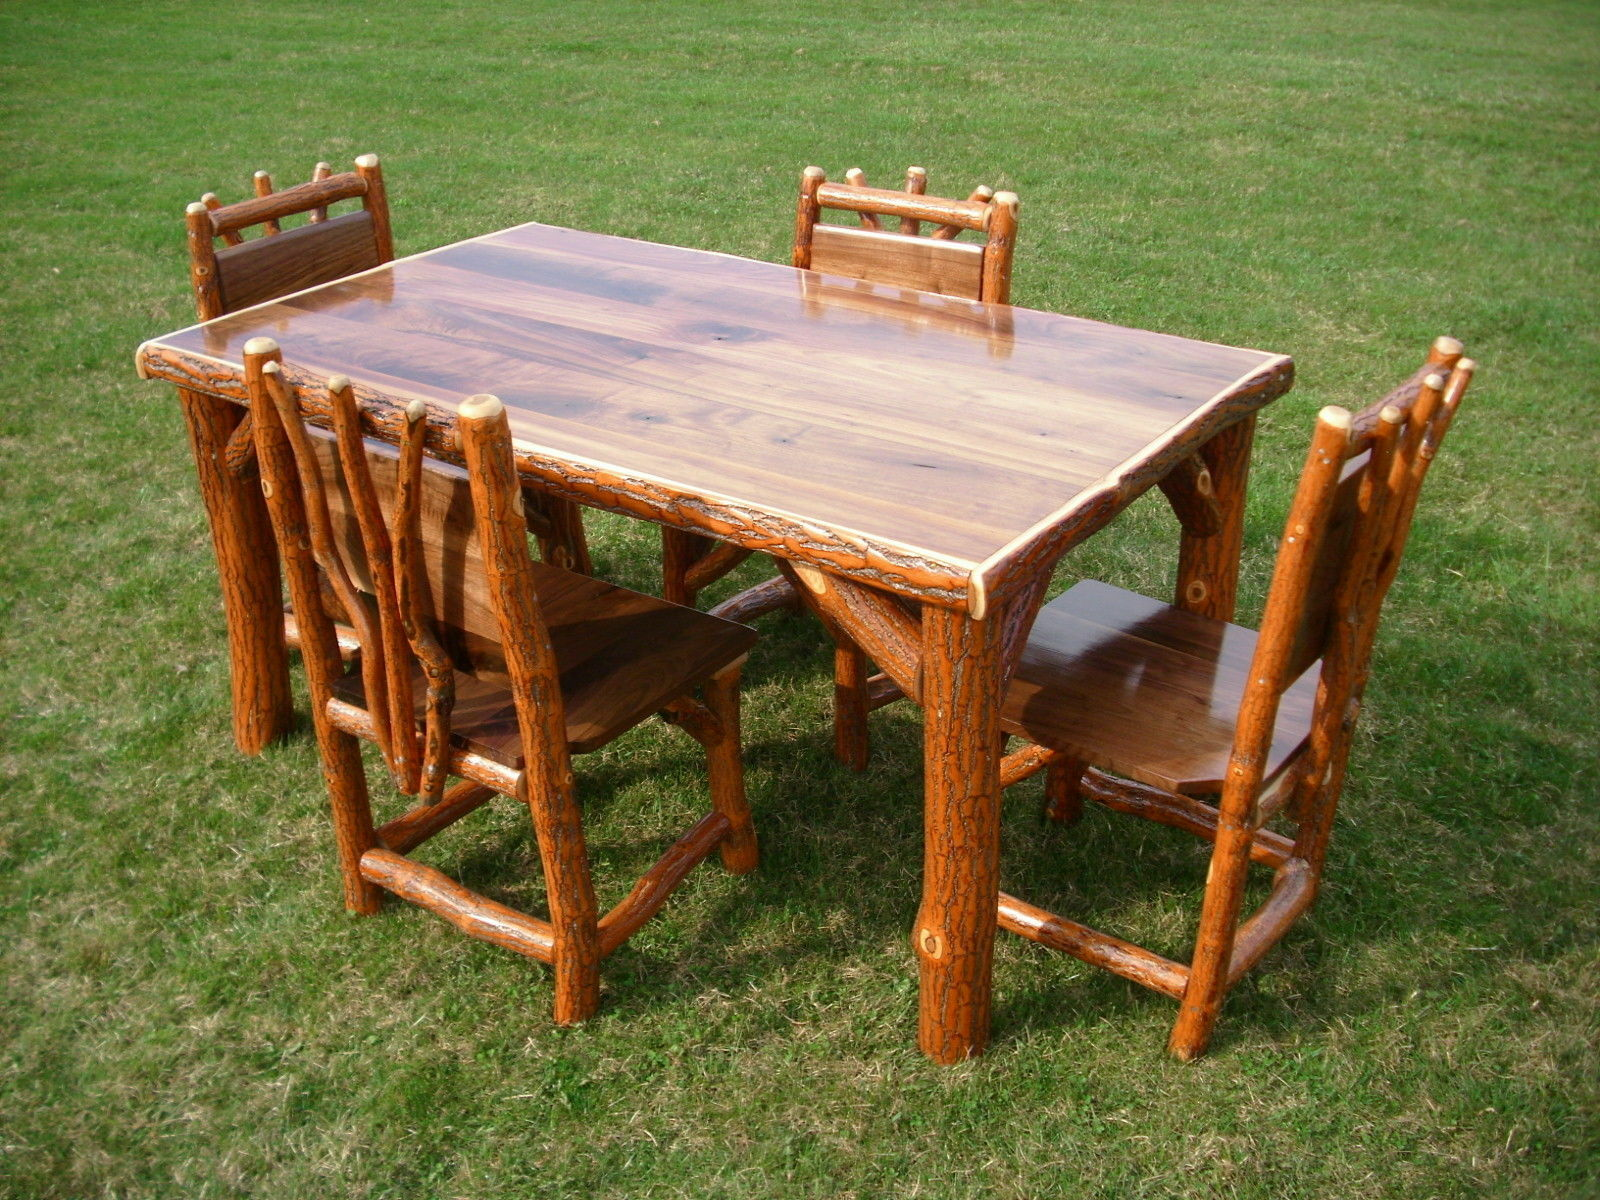 g kitchen tables How to Build a Rustic Kitchen Table